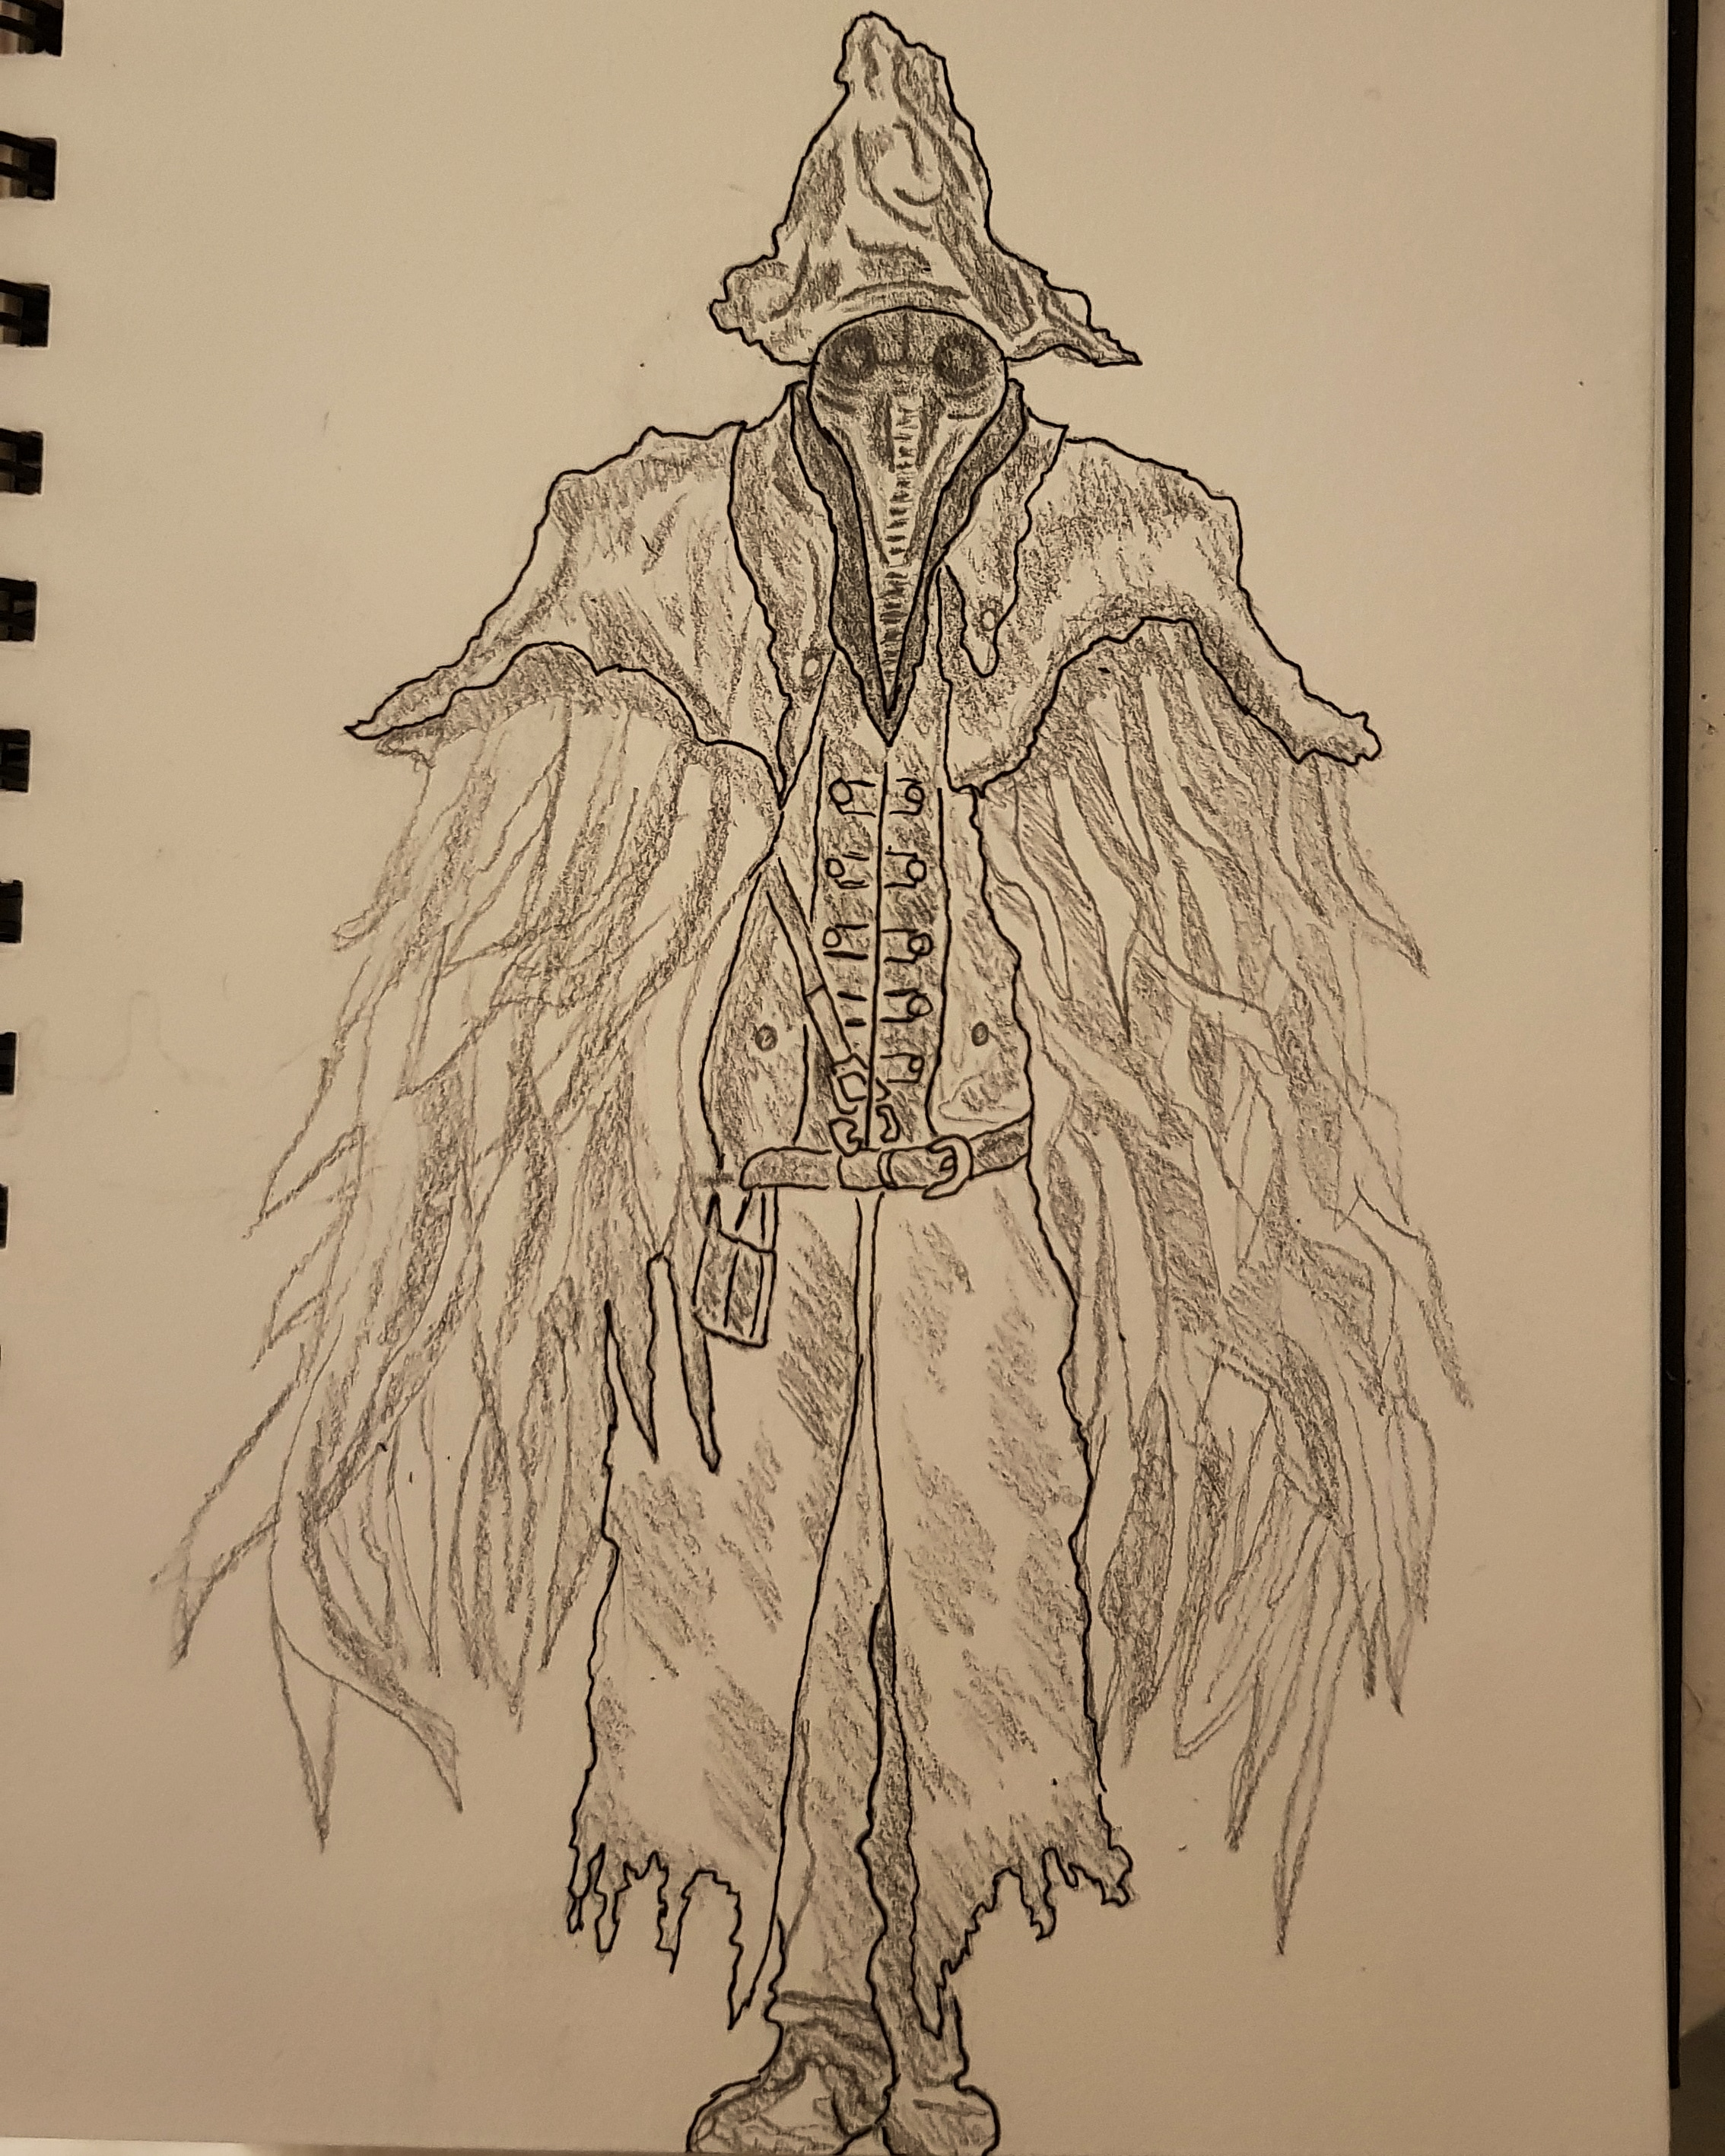 clipart royalty free A quick sketch of. Bloodborne drawing eileen the crow